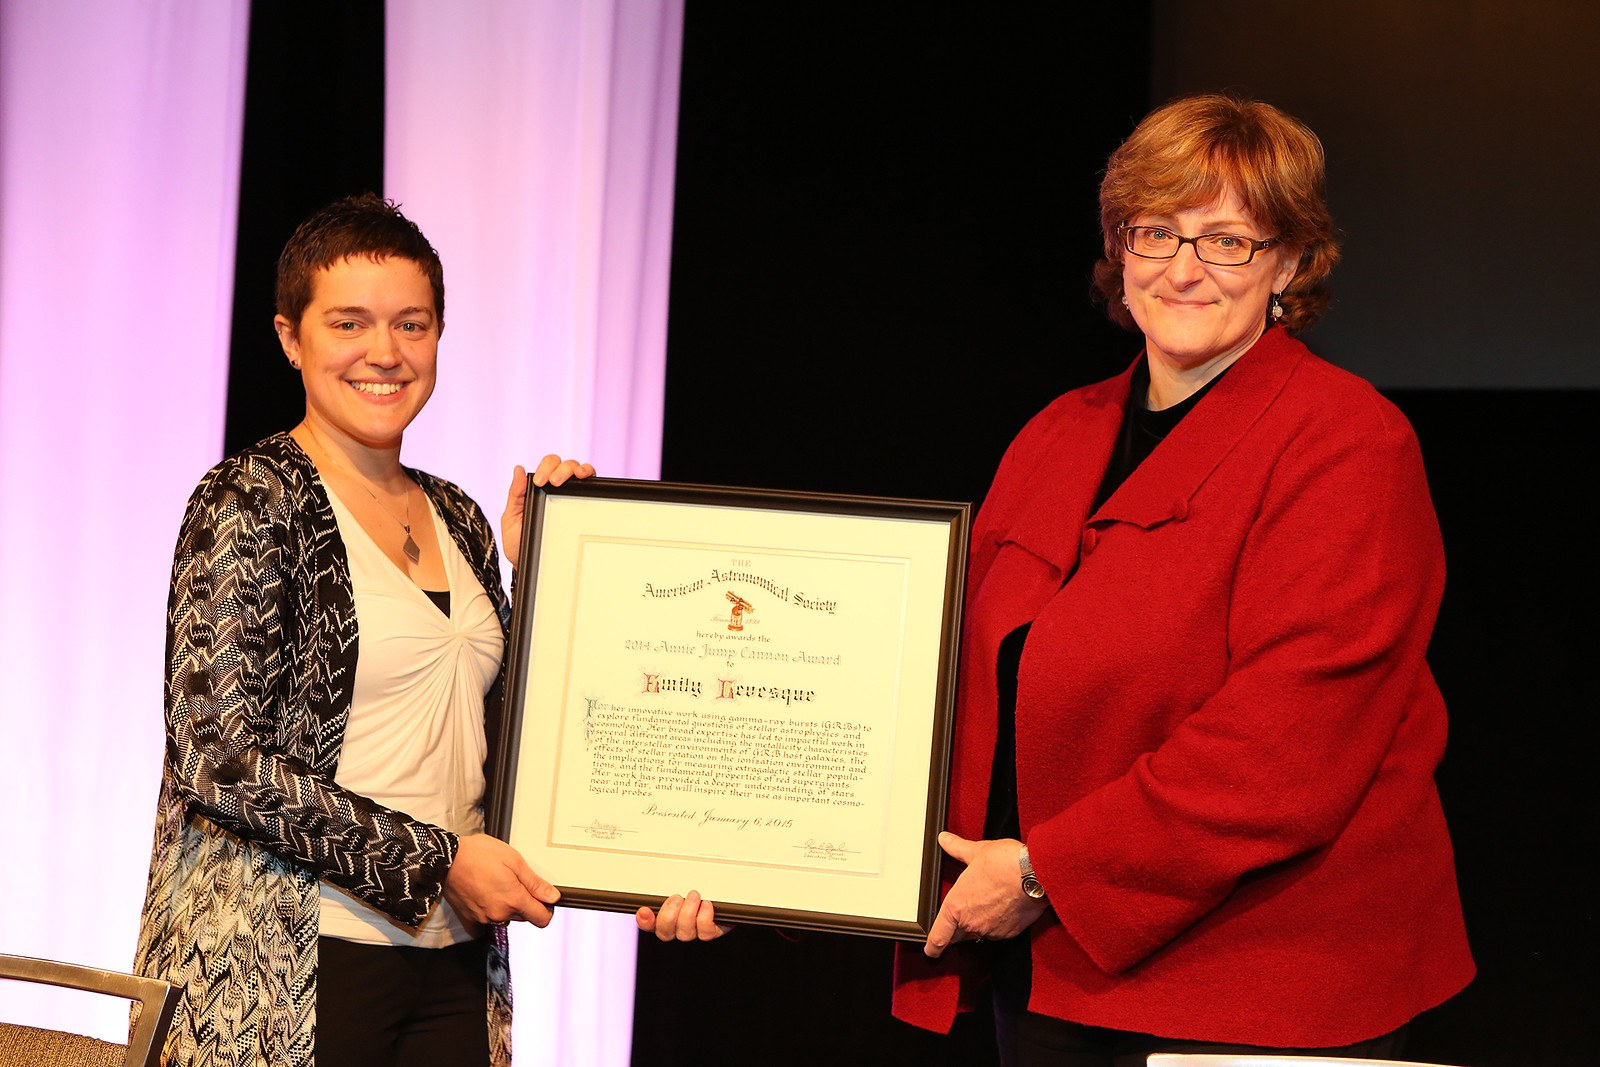 Emily Levesque (left) receiving her Annie Jump Cannon award from the American Astronomical Society. Image: AAS/Joson Images